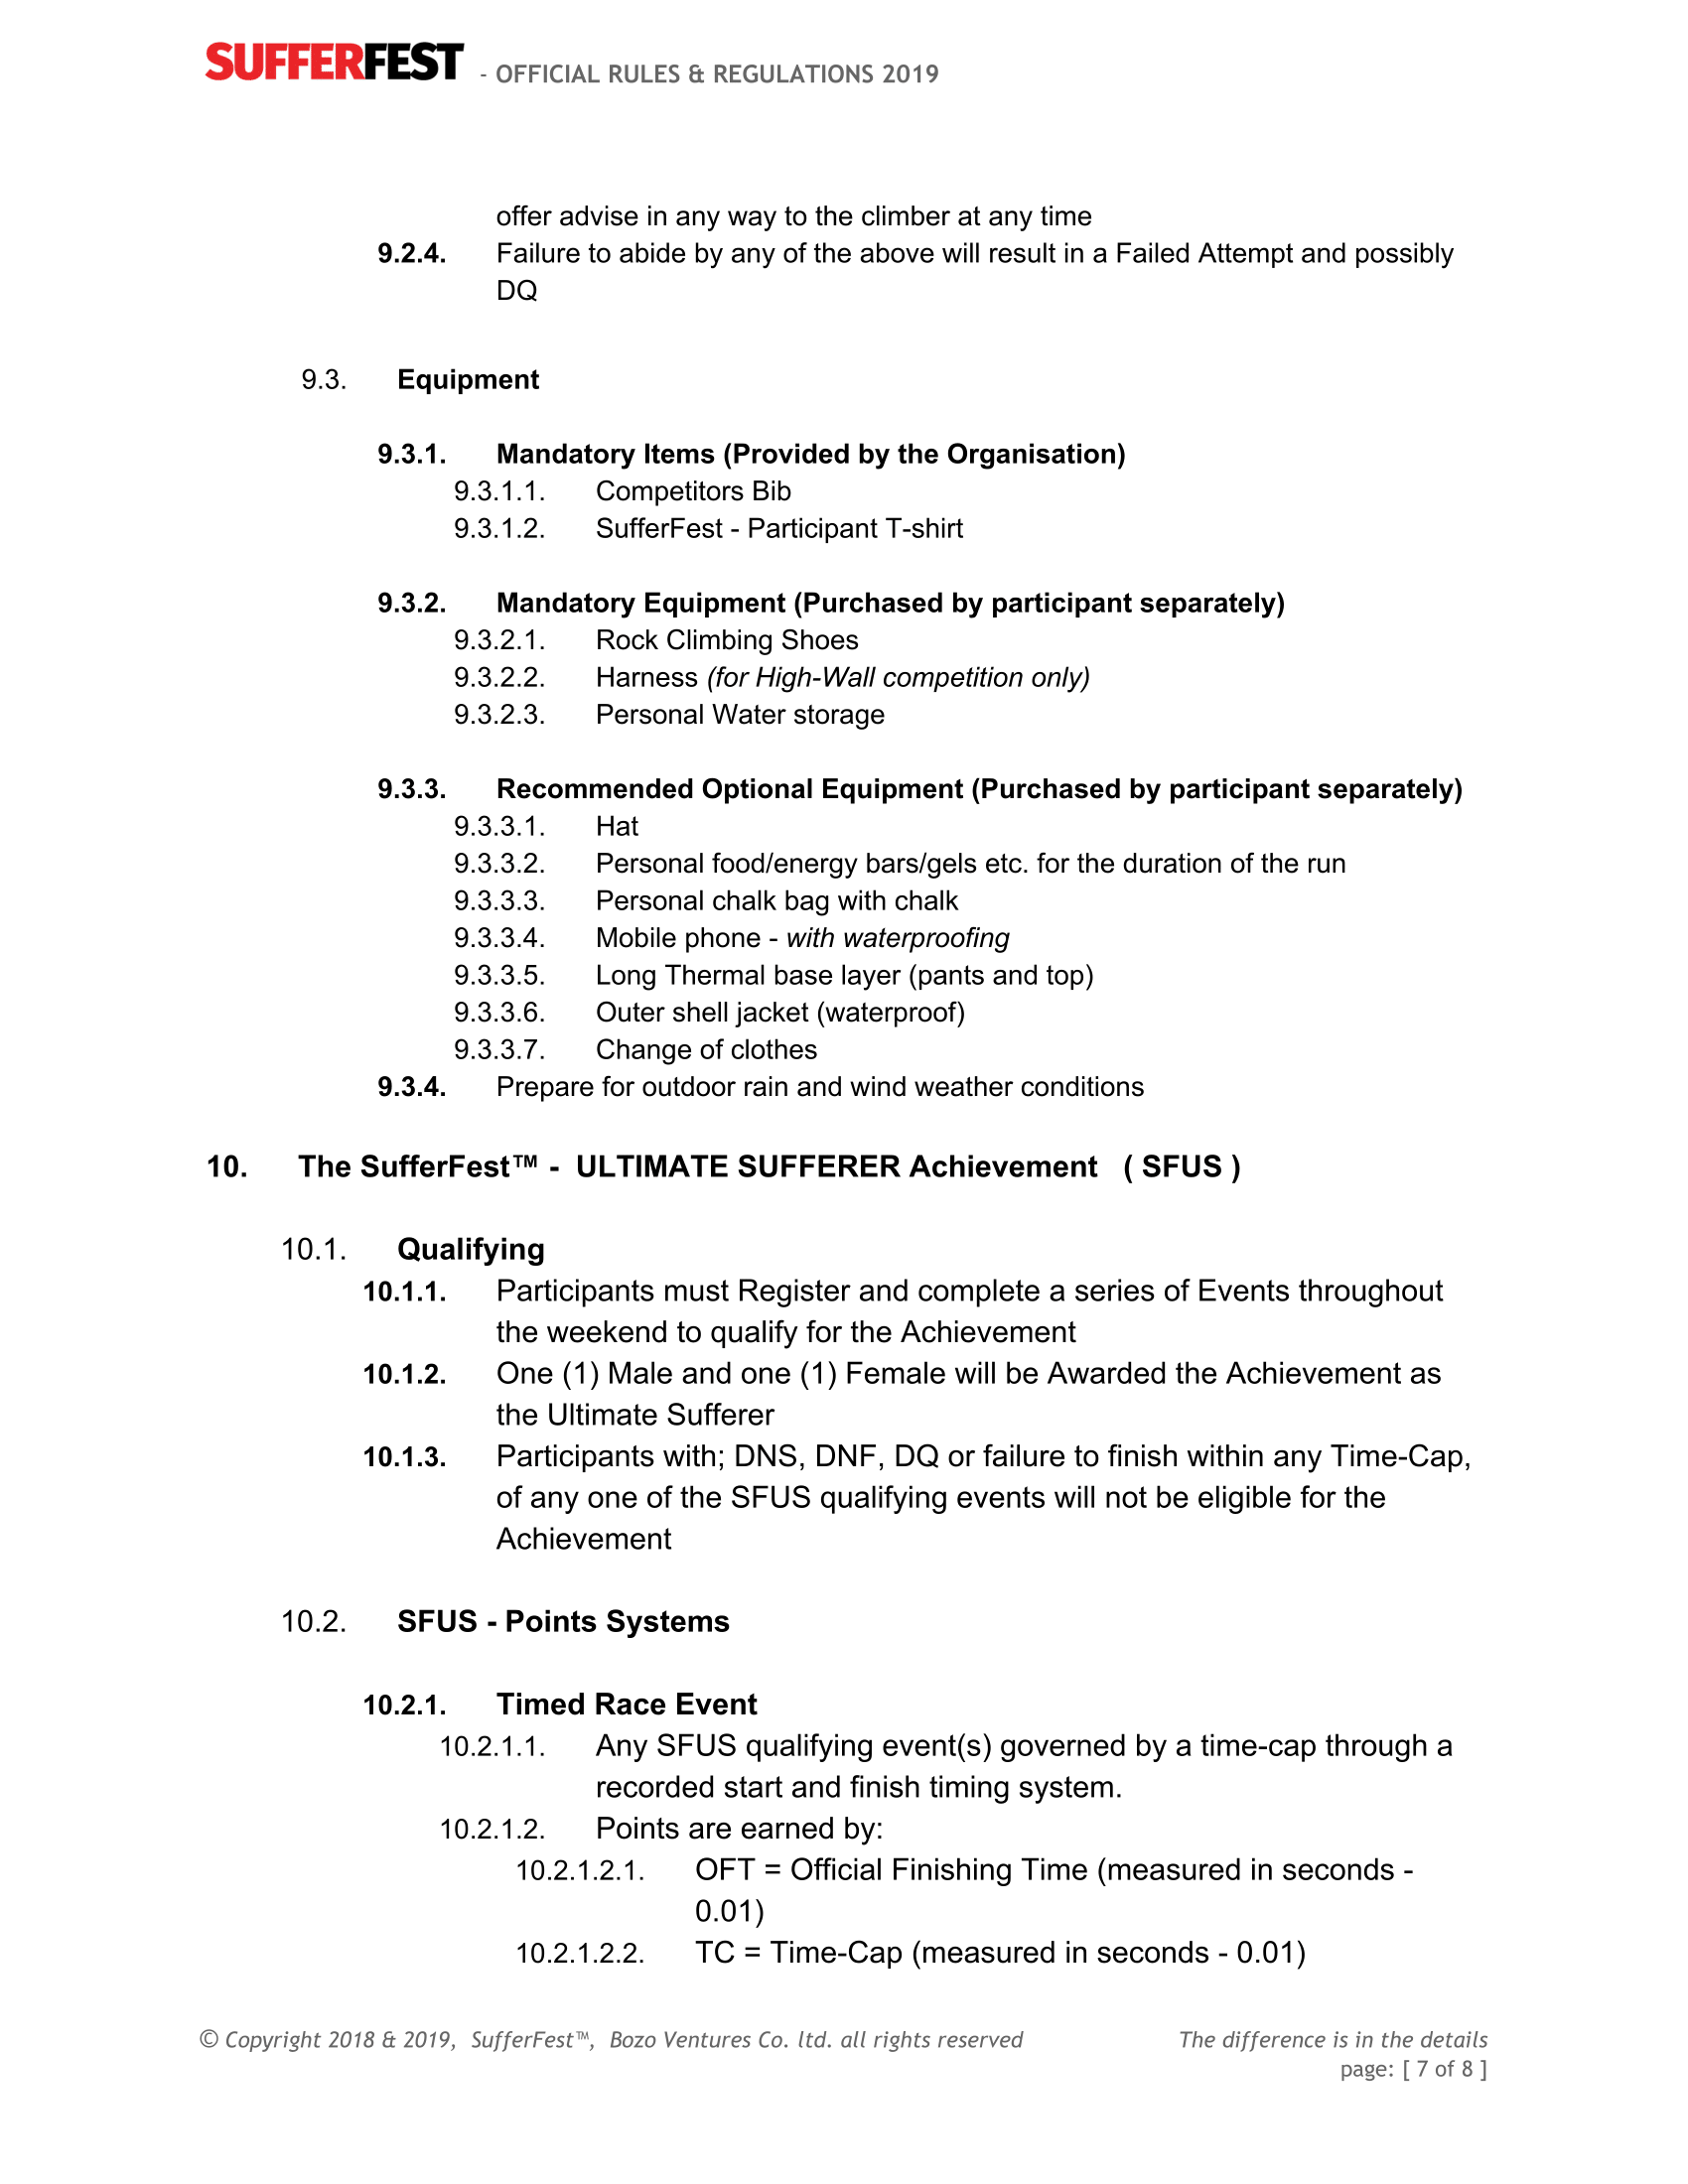 [ENG] SufferFest™ - Official Rules and Regulations - 20181022-8.png